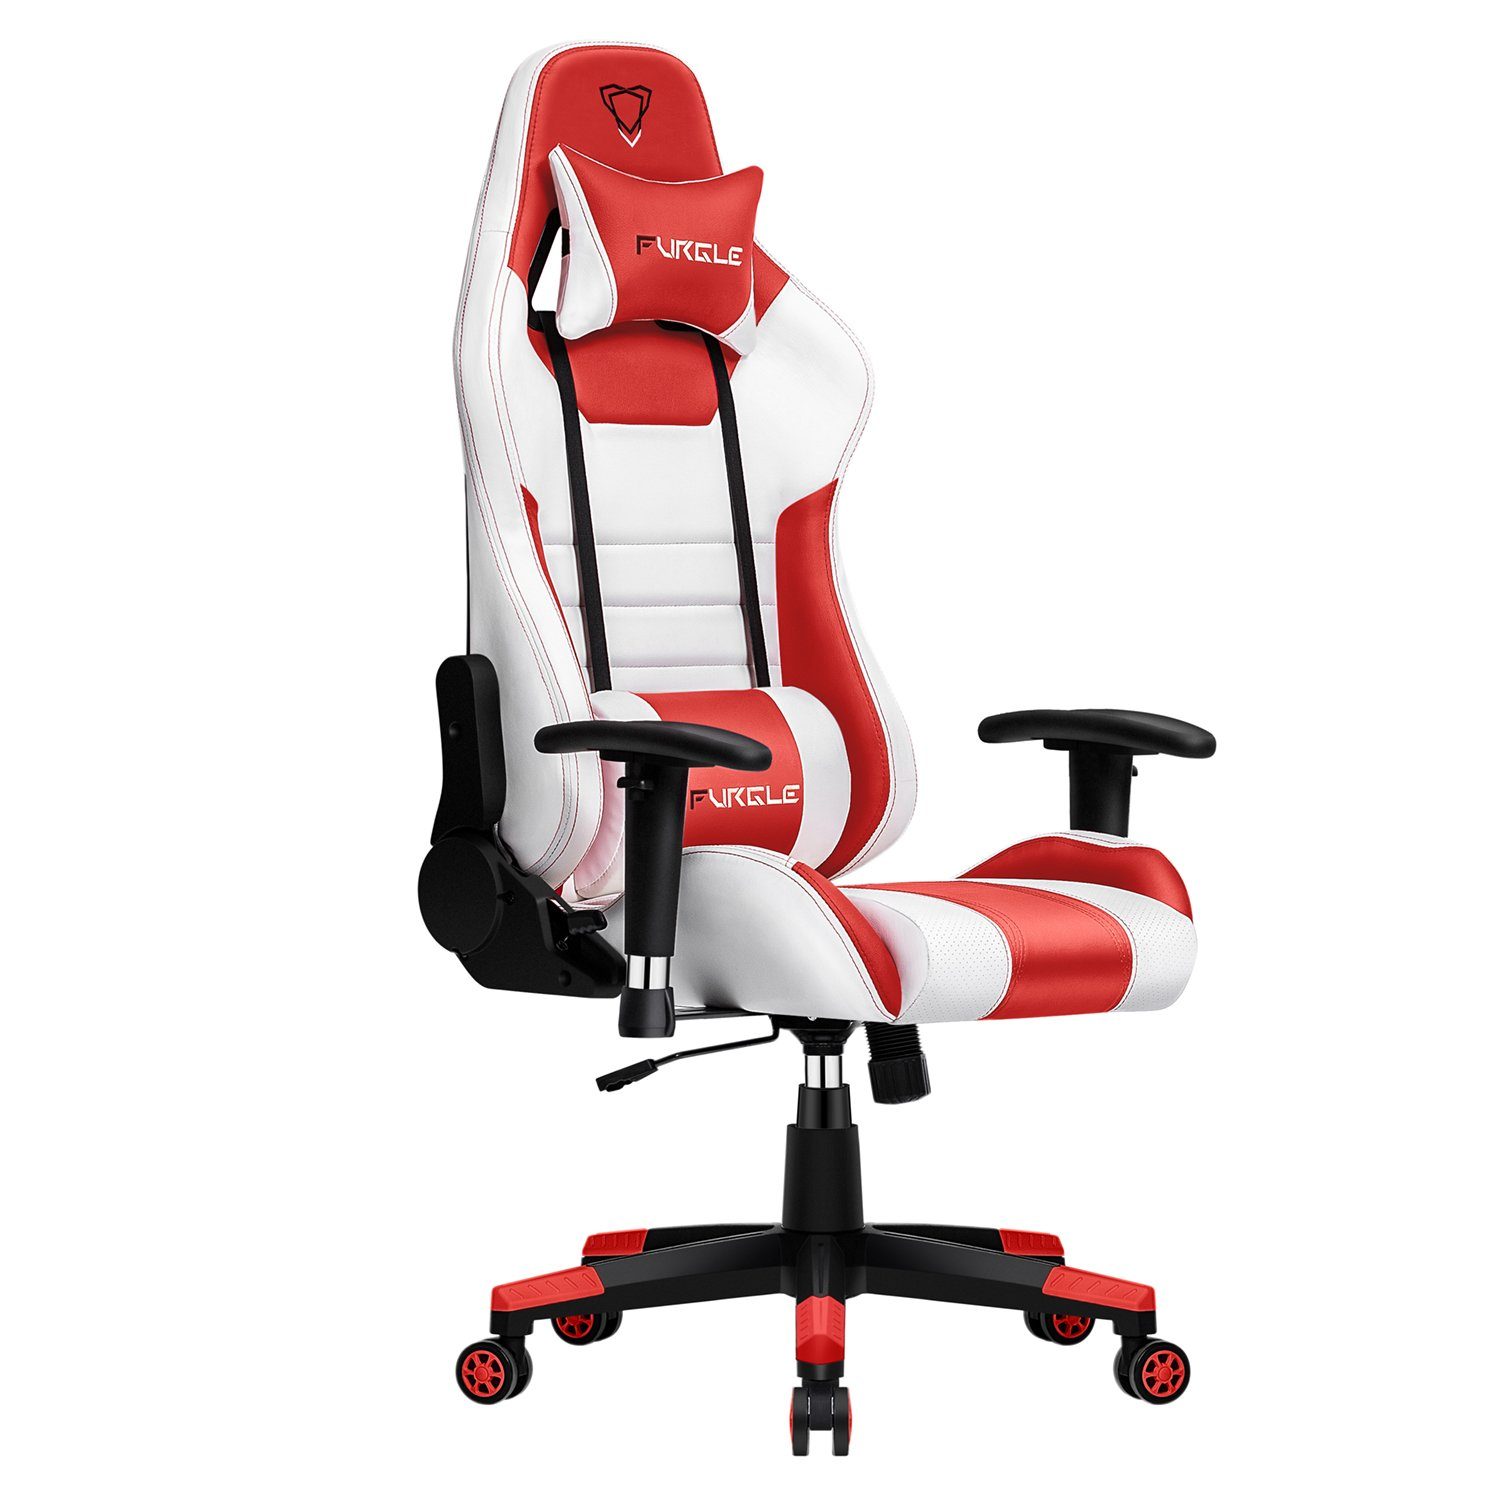 Gaming Chair Racing Style High-Back Office Chair W/3D Adjustable Armrests PU Leather Executive Ergonomic Swivel Game Chairs